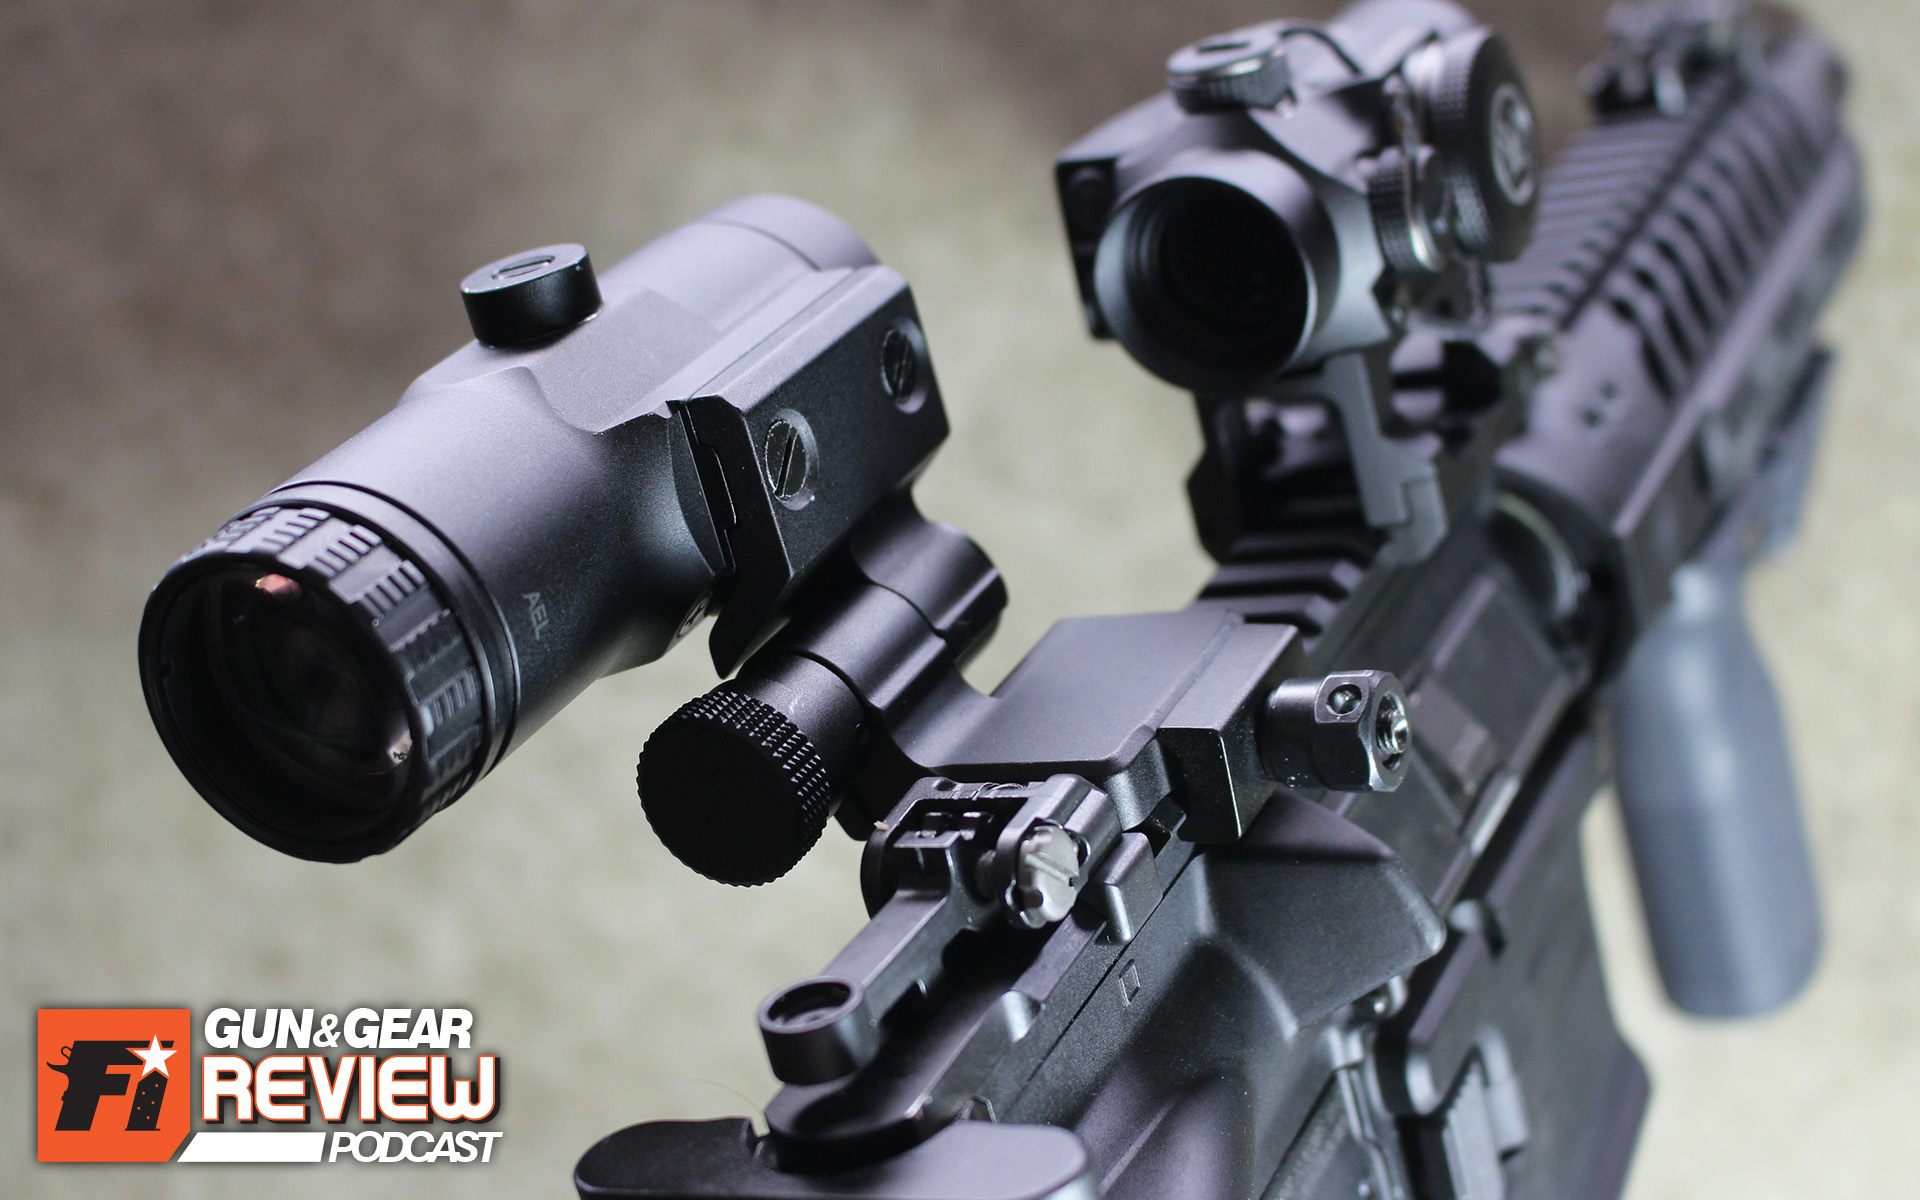 I especially enjoy running a magnifier and red dot combo on SBRs, as the lighter weight of the short barrel balances out the added weight on the rail. Stretching out the range is a nice plus too.